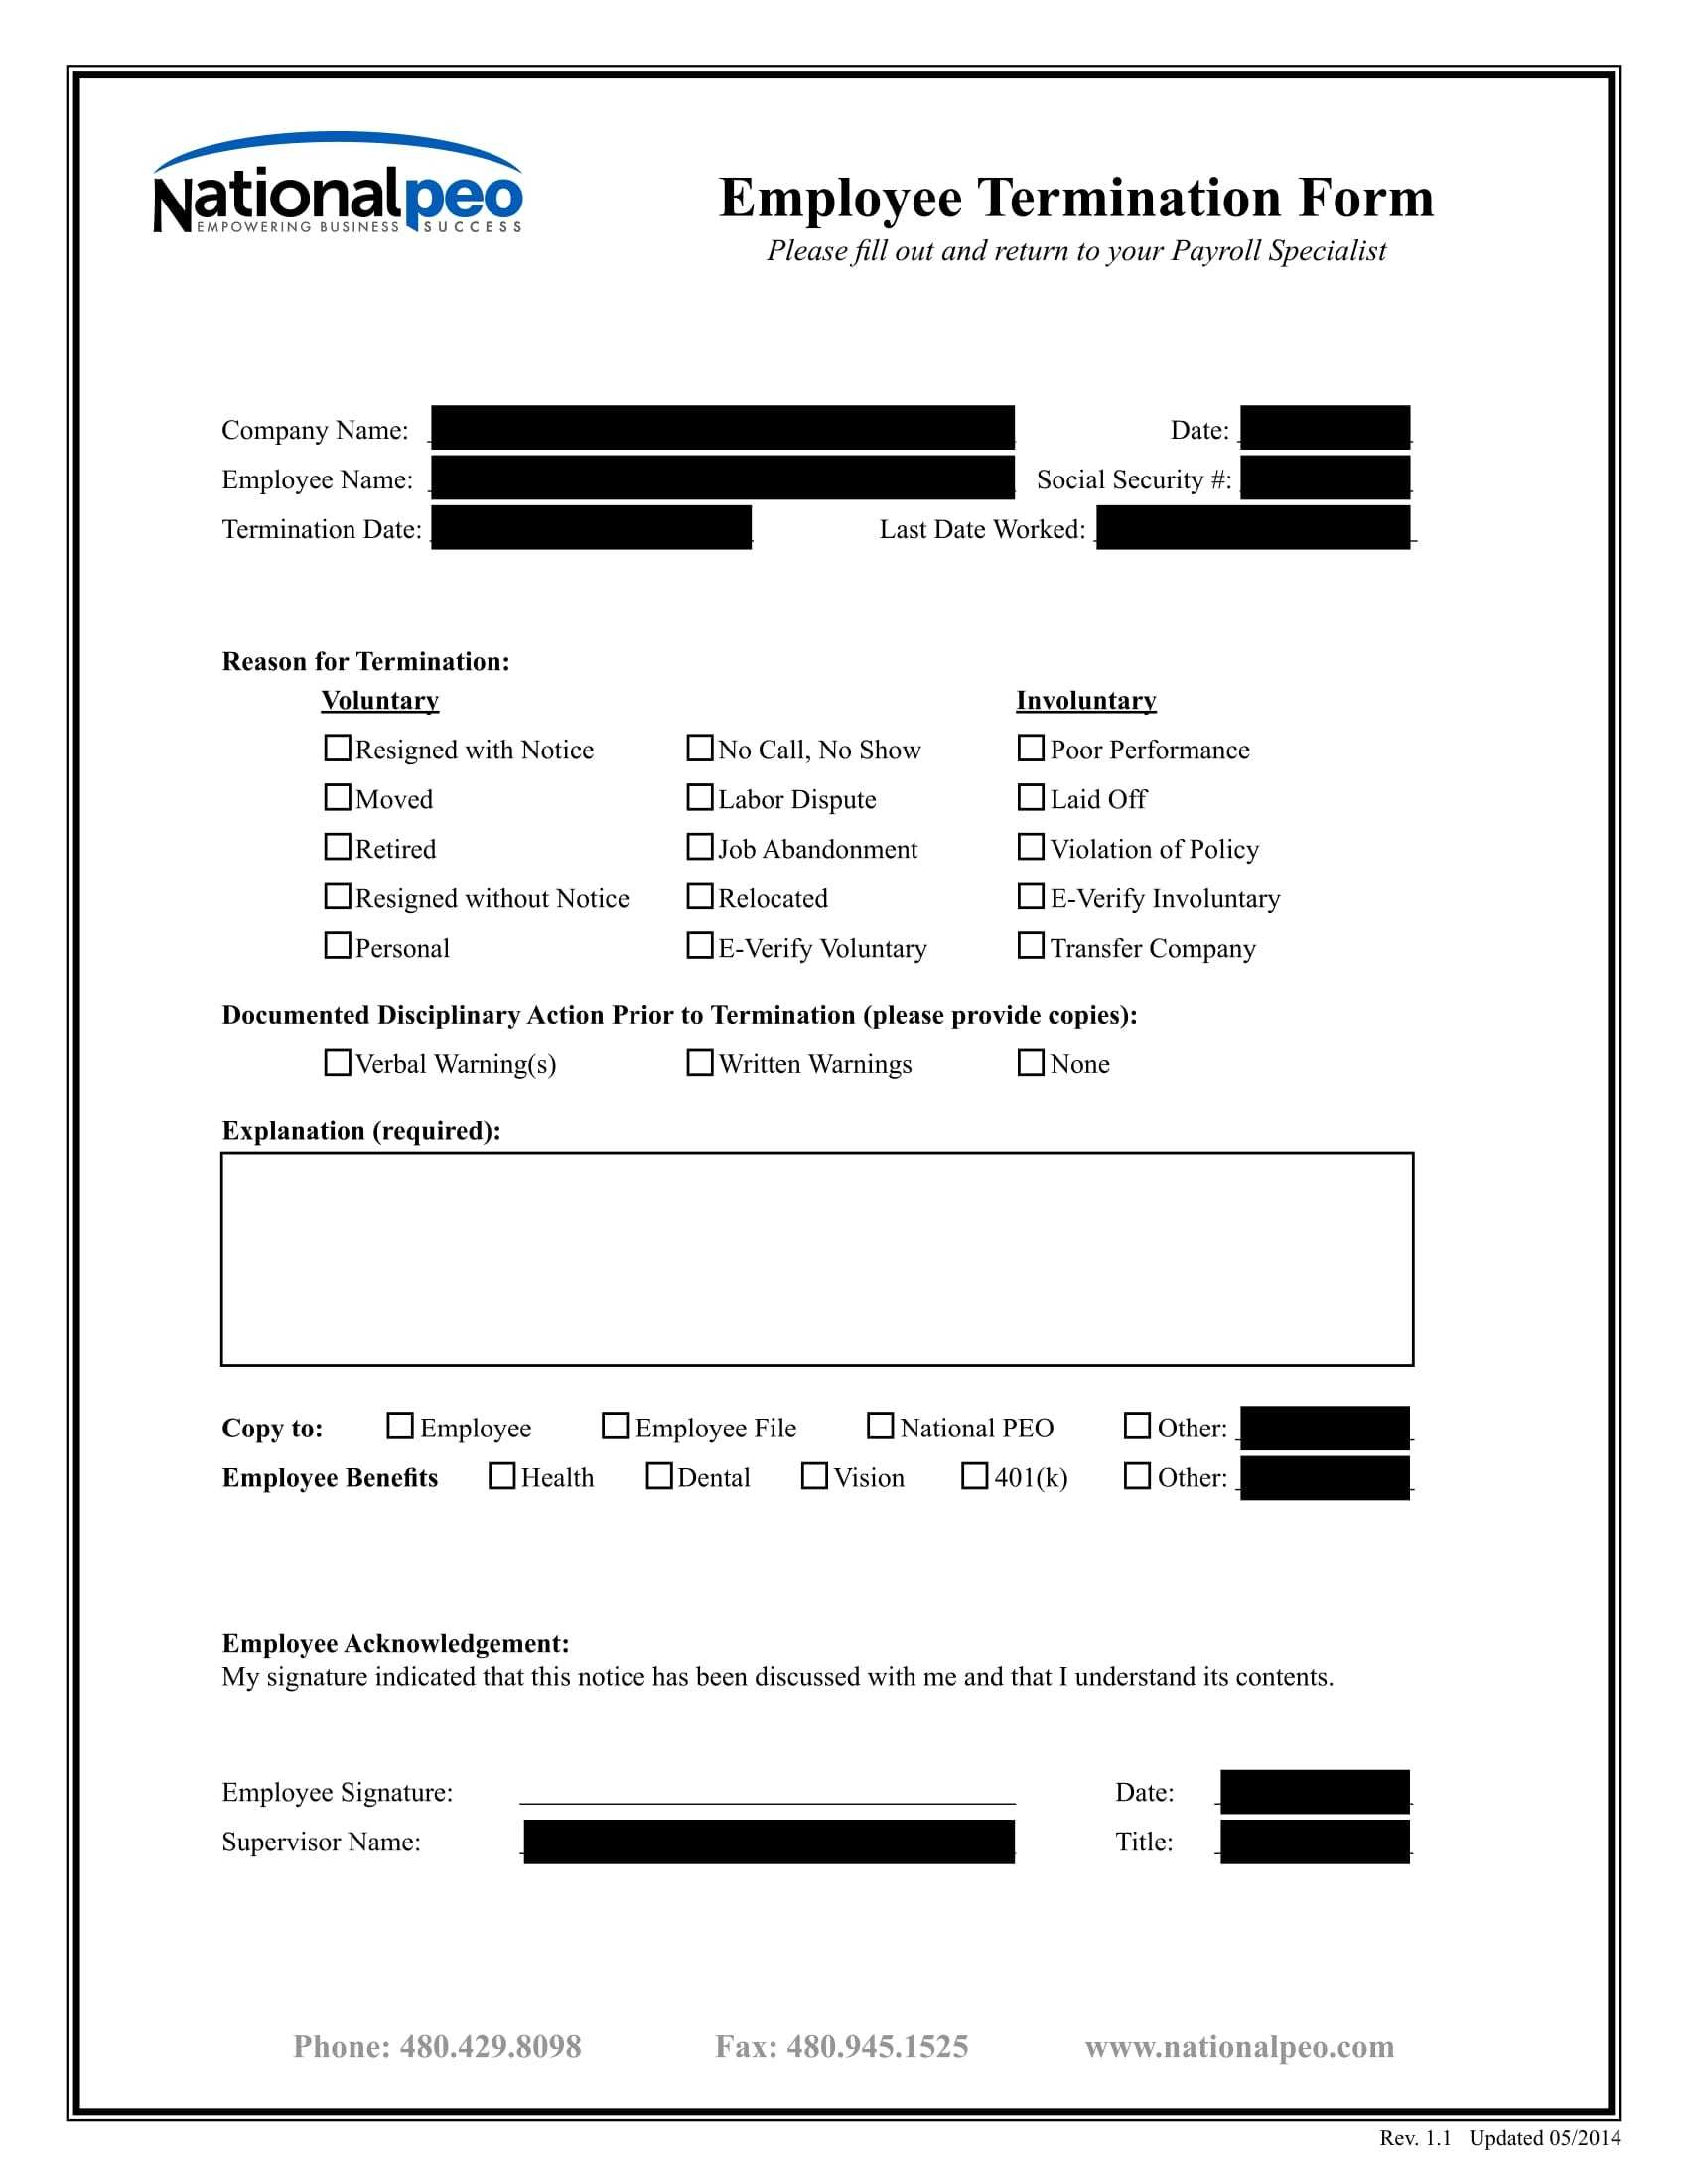 FREE 3 Employee Termination Forms In WORD PDF